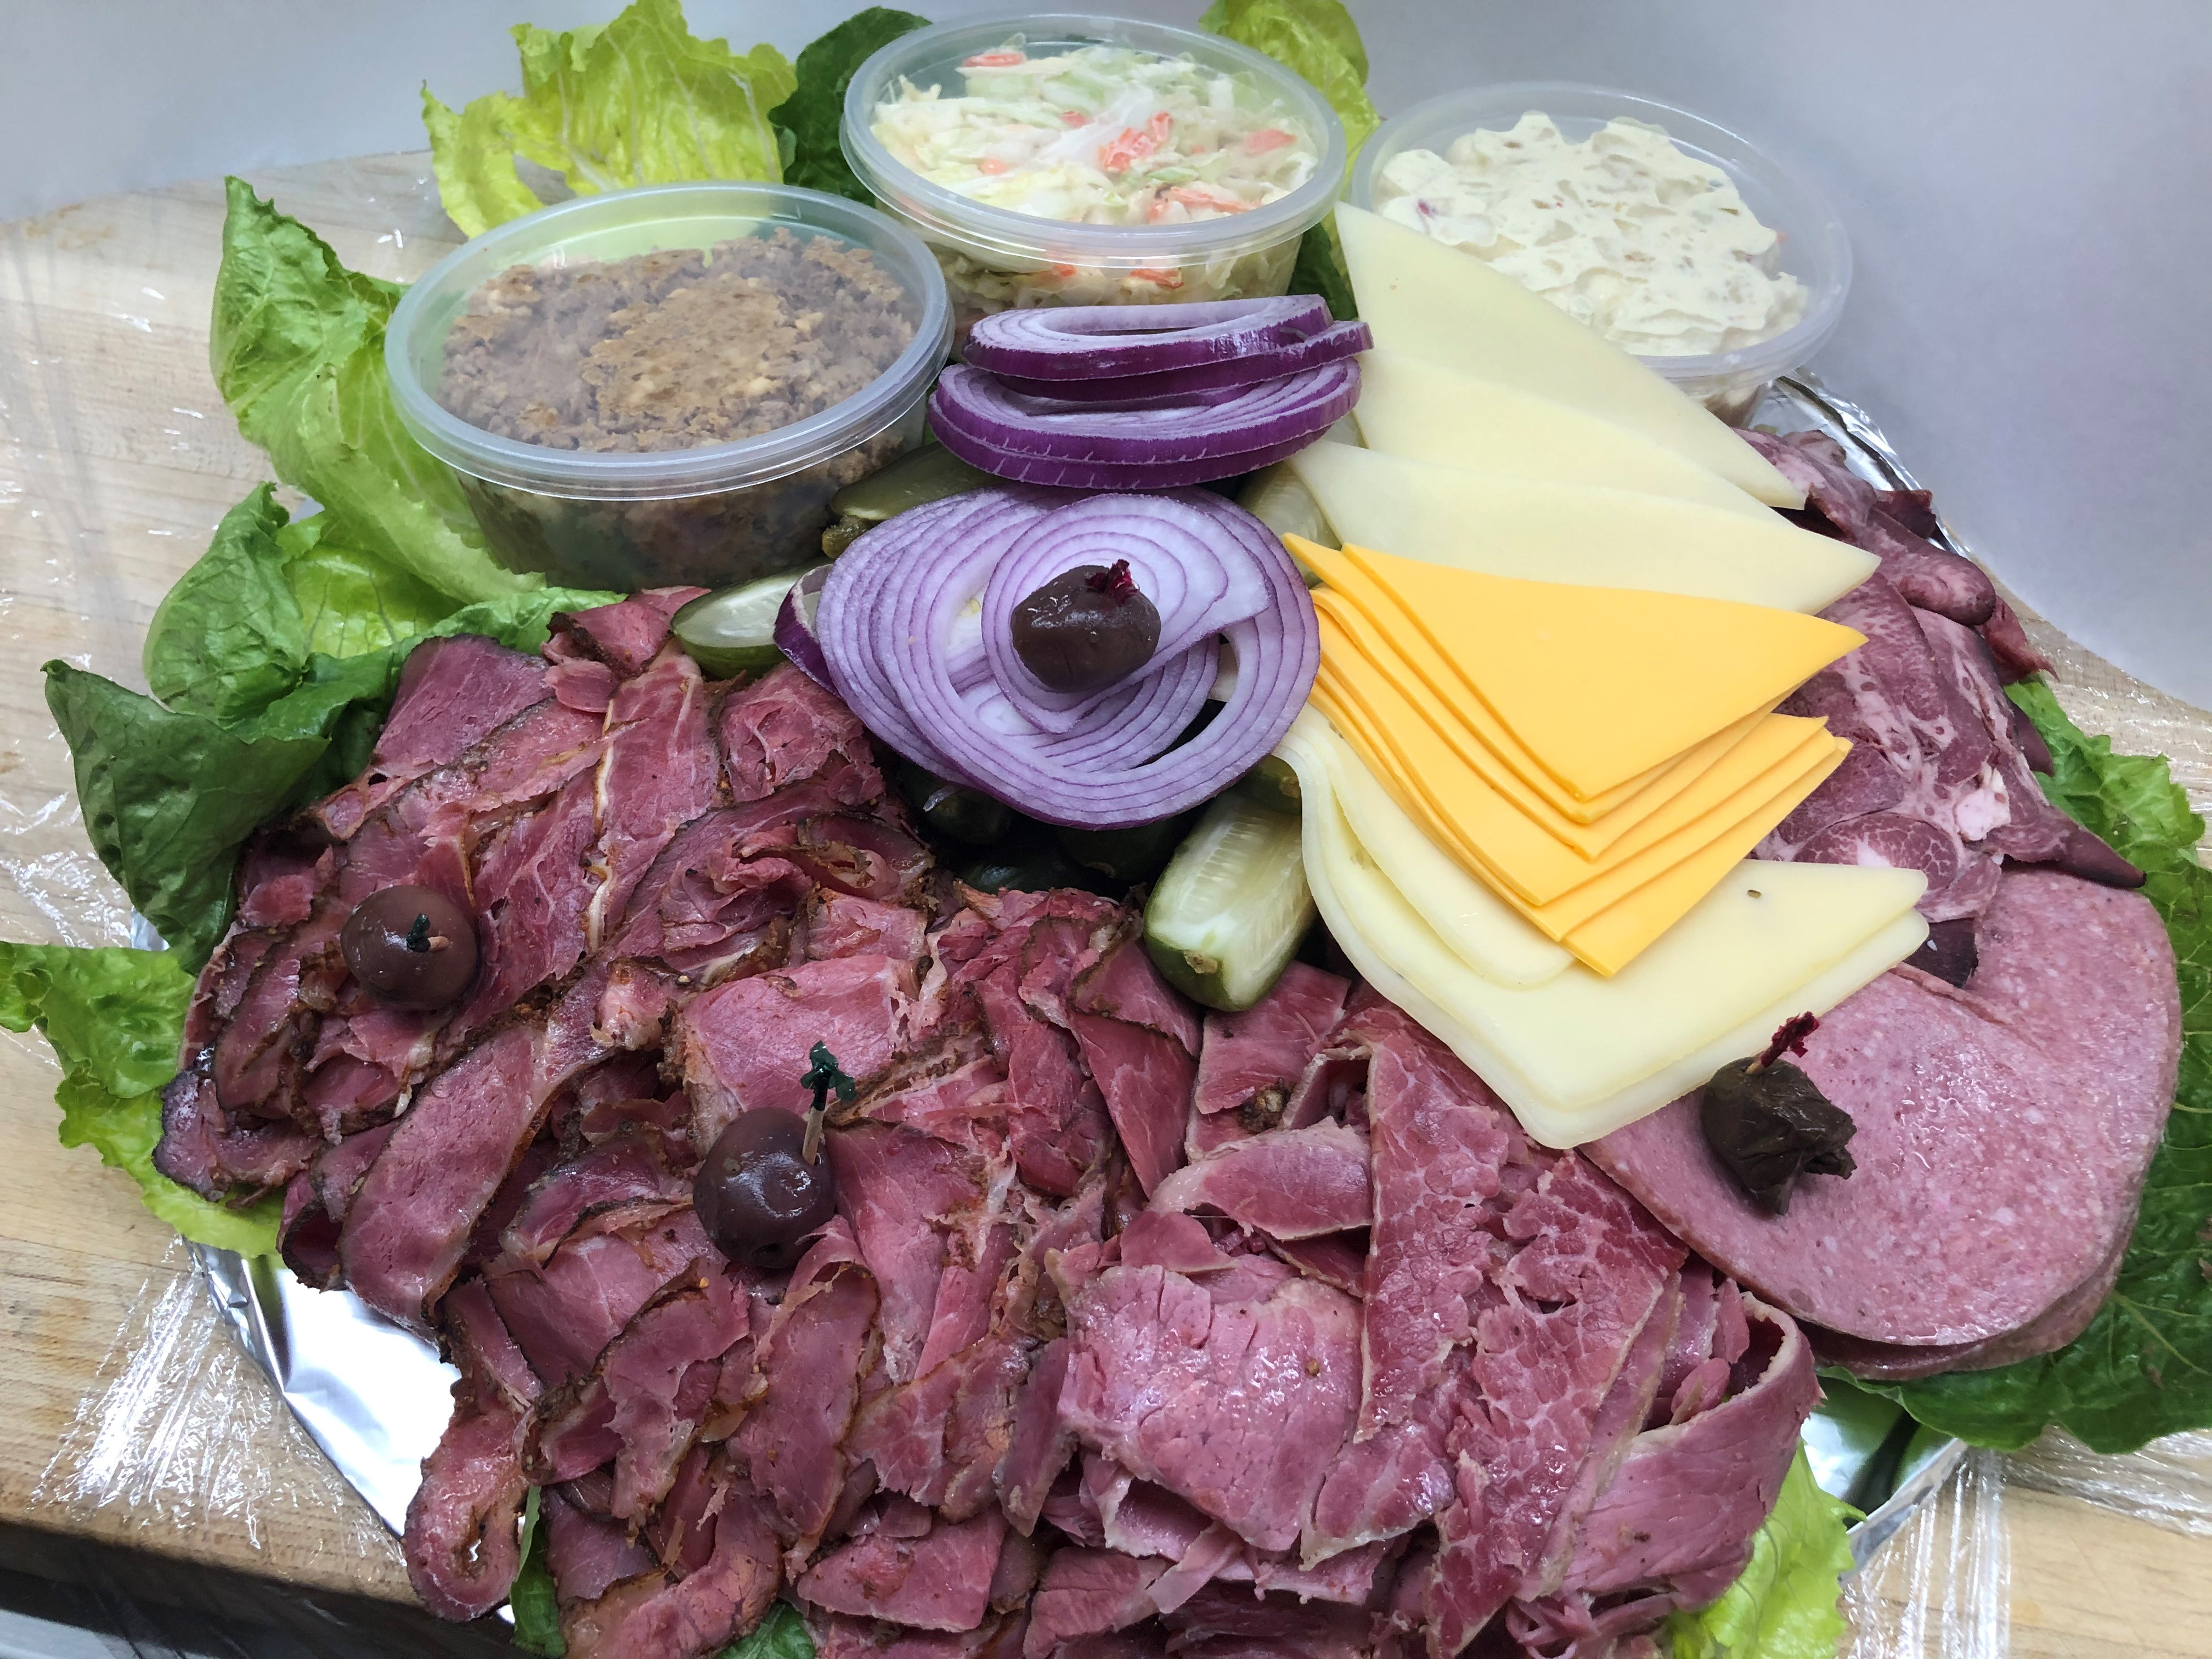 This is the Deli Feast. A beautiful ensemble of meats and cheese for feed an army. An OC classic.